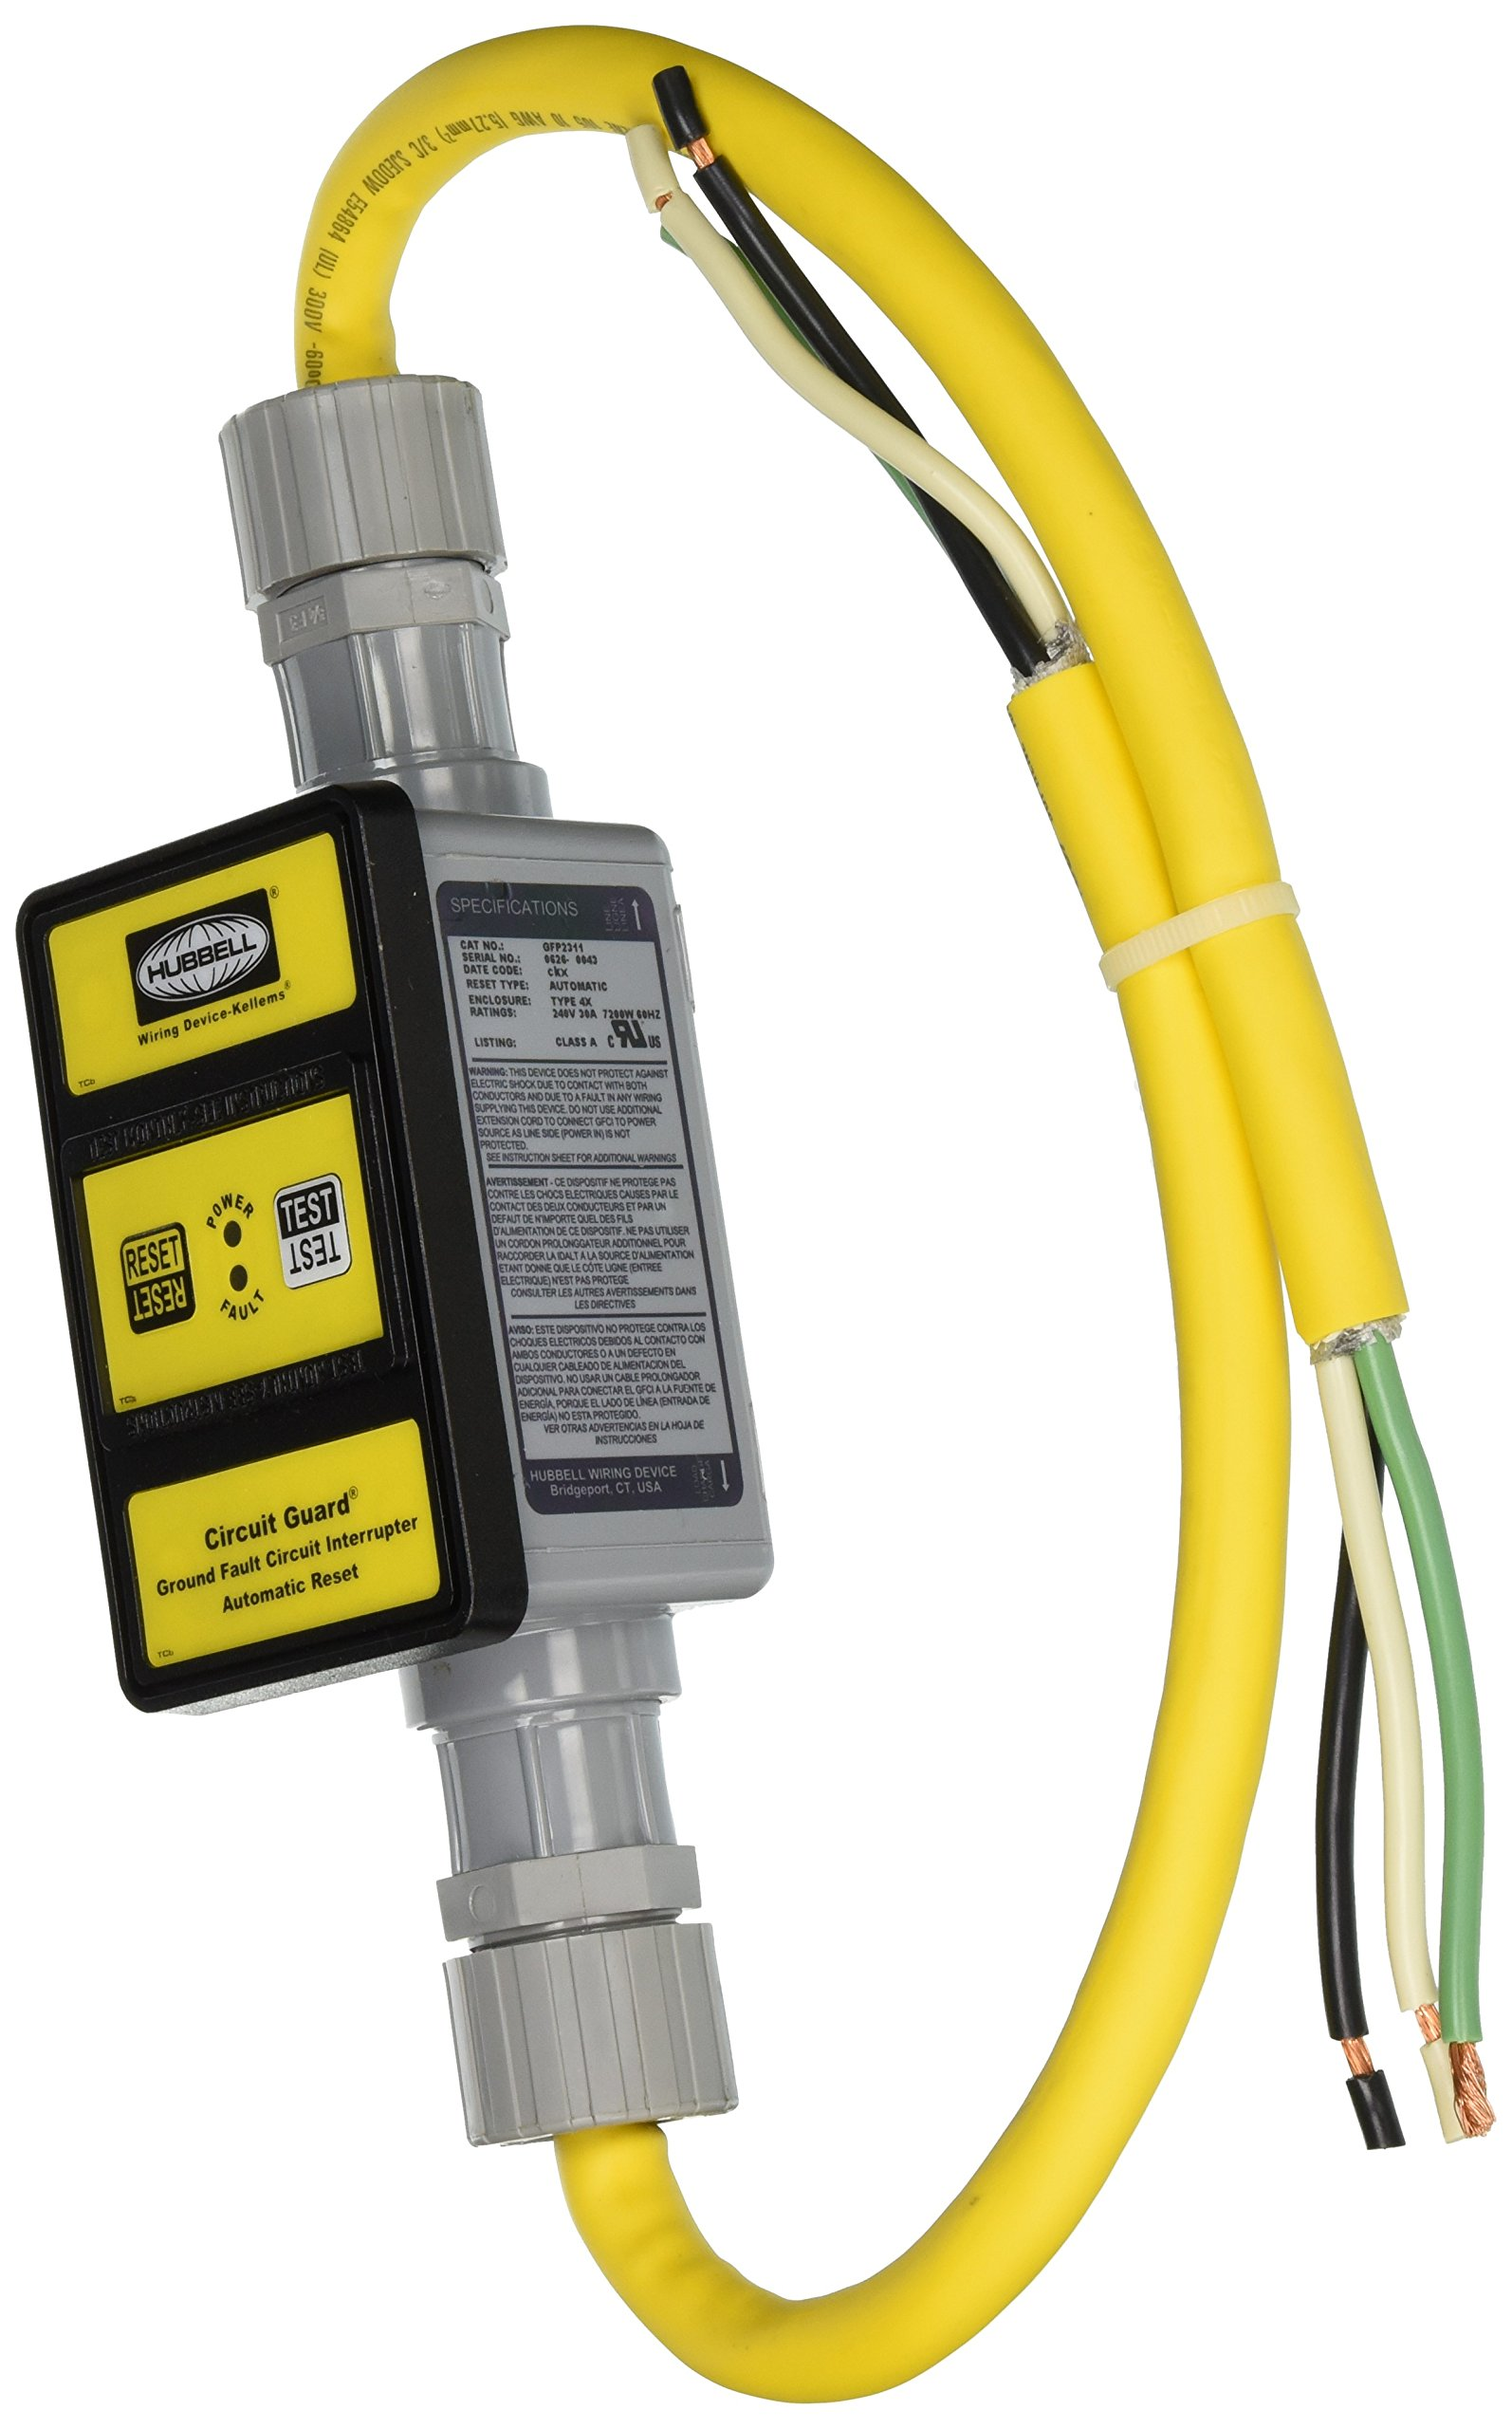 Hubbell GFP2311 Port GFCI, Auto Set, 30 amp, 240V, 2' by Hubbell